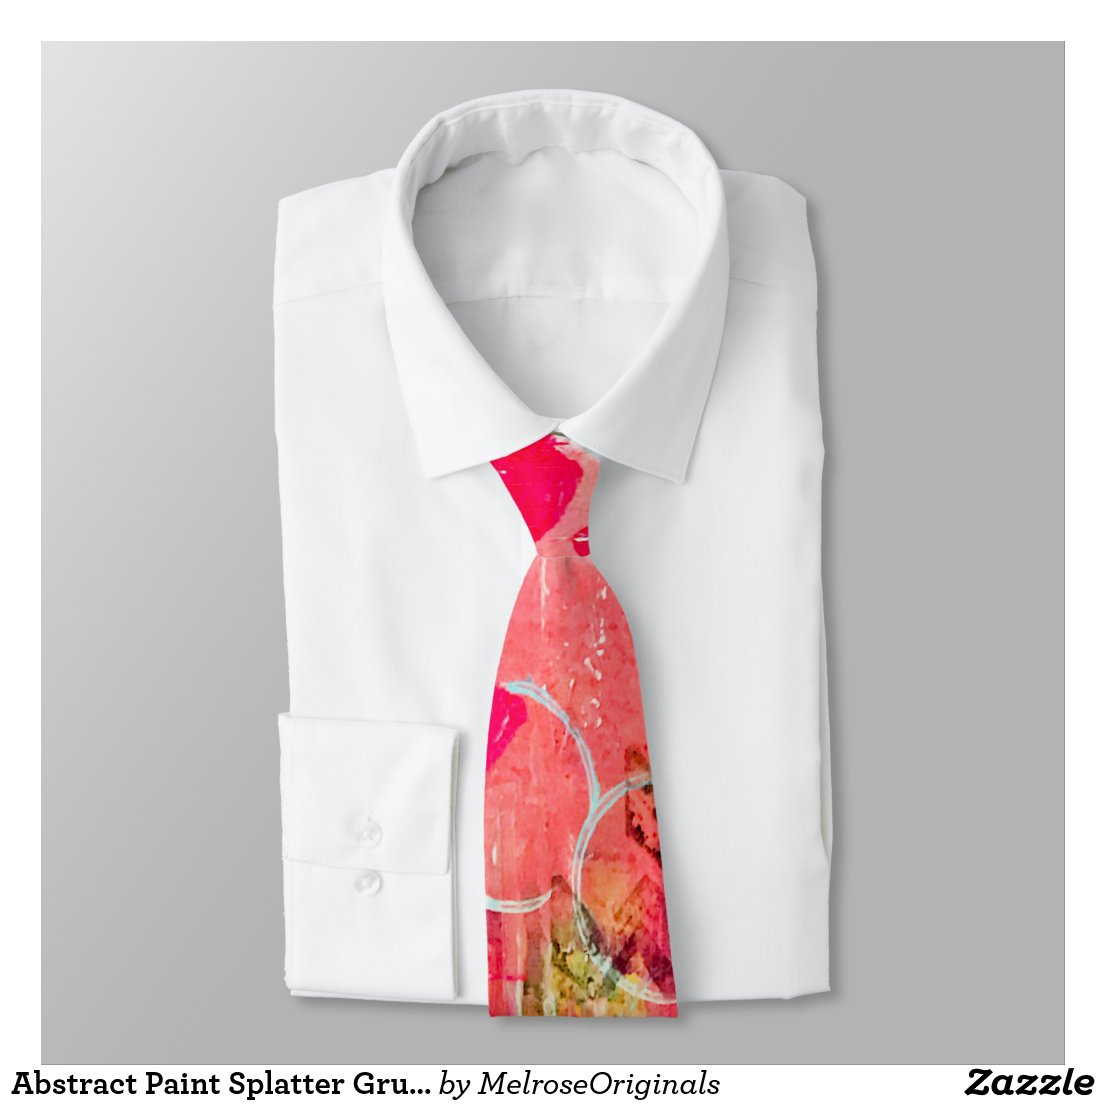 Abstract Paint Splatter Grunge Artsy Cool Novelty Tie